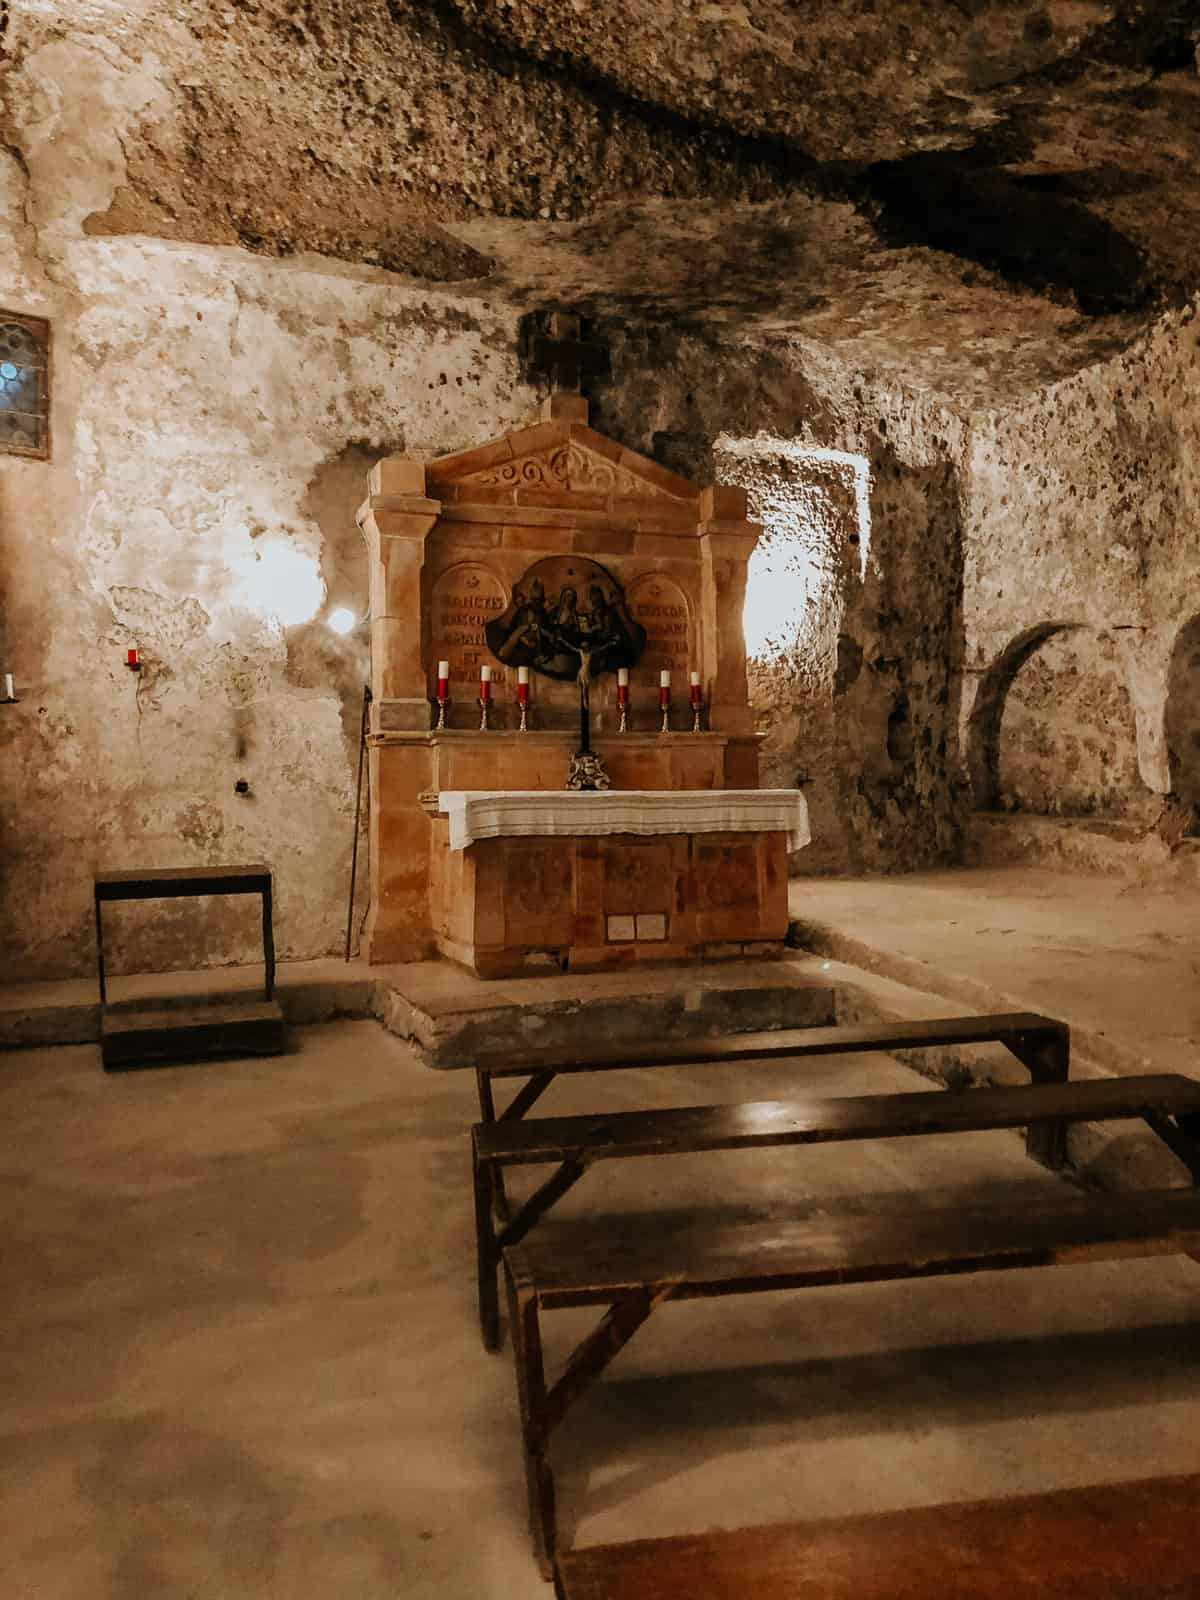 Under ground church with seats facing the ulter